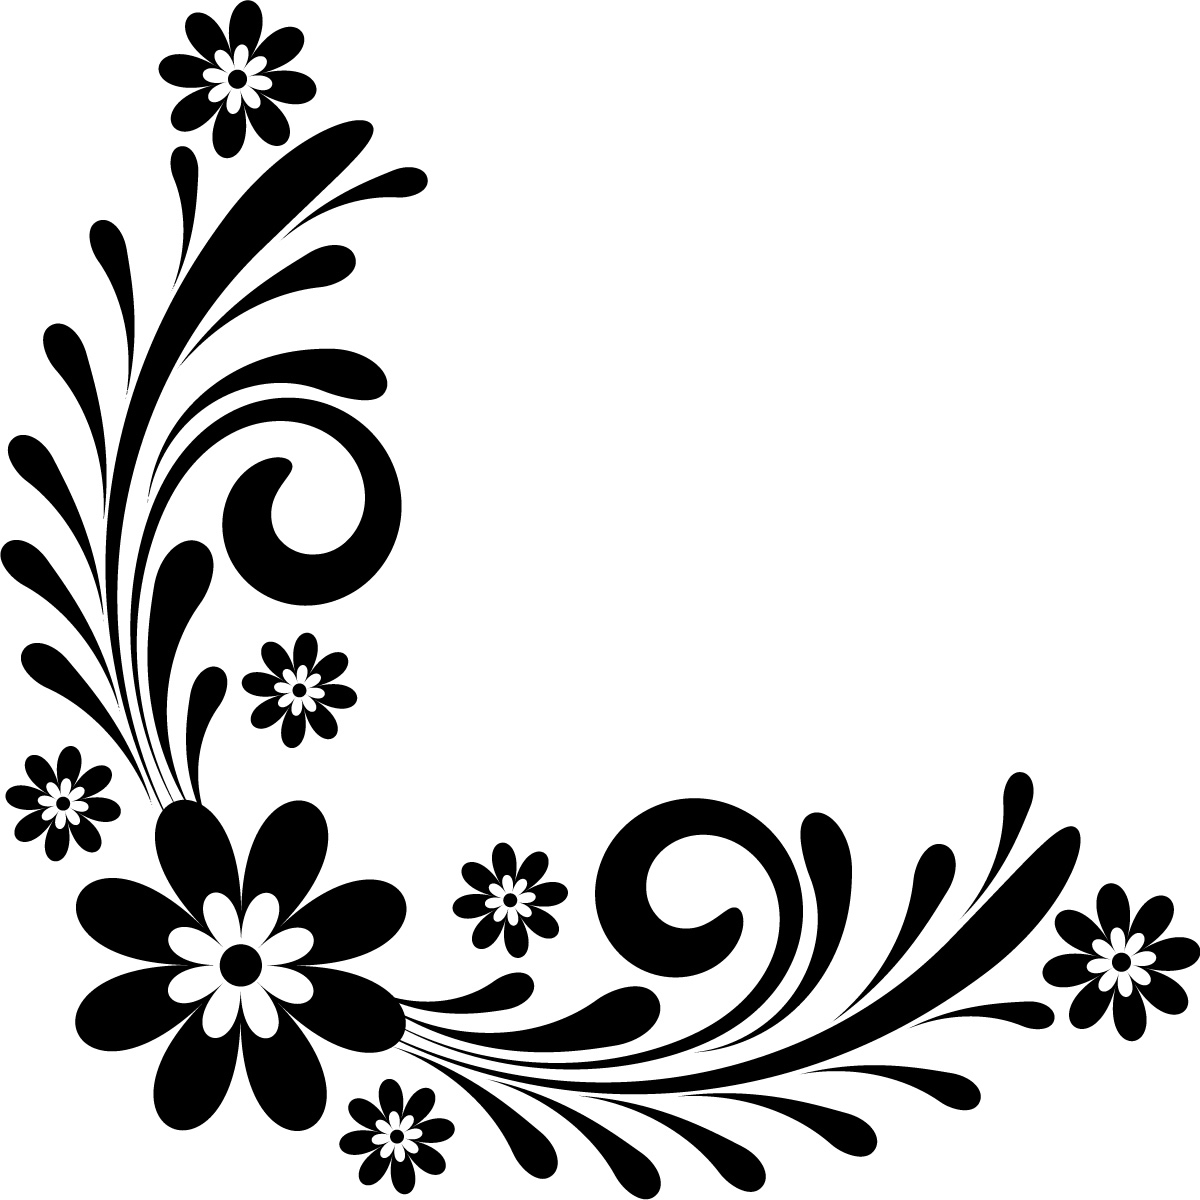 Black and white flower design clipart free download best black and 1200x1200 black and white designs to draw clipart mightylinksfo